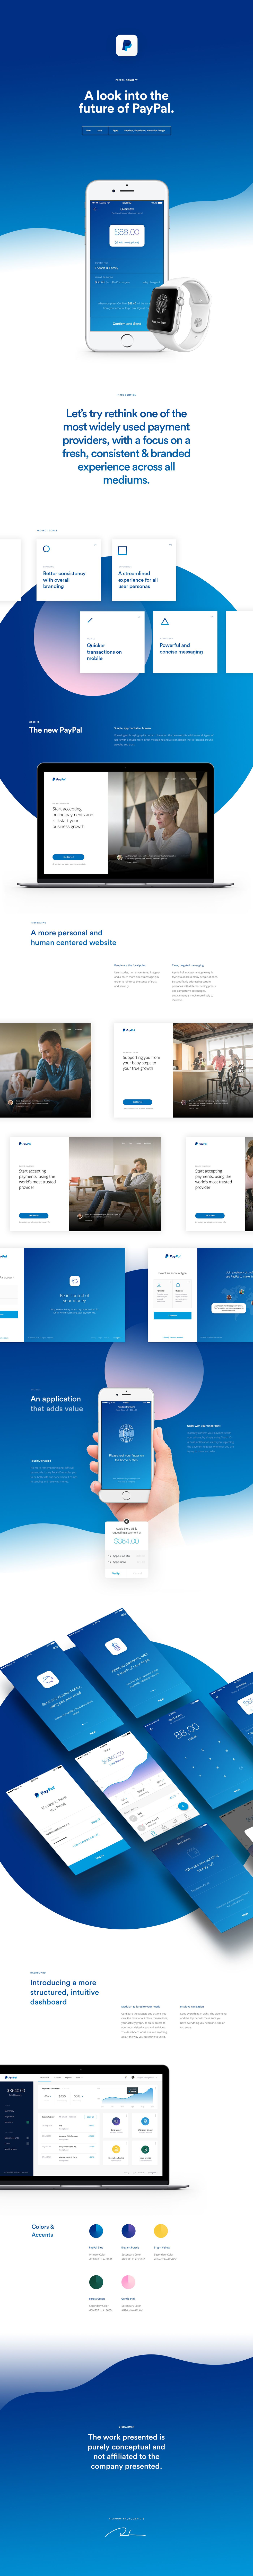 Pin On Mobile Inspirations